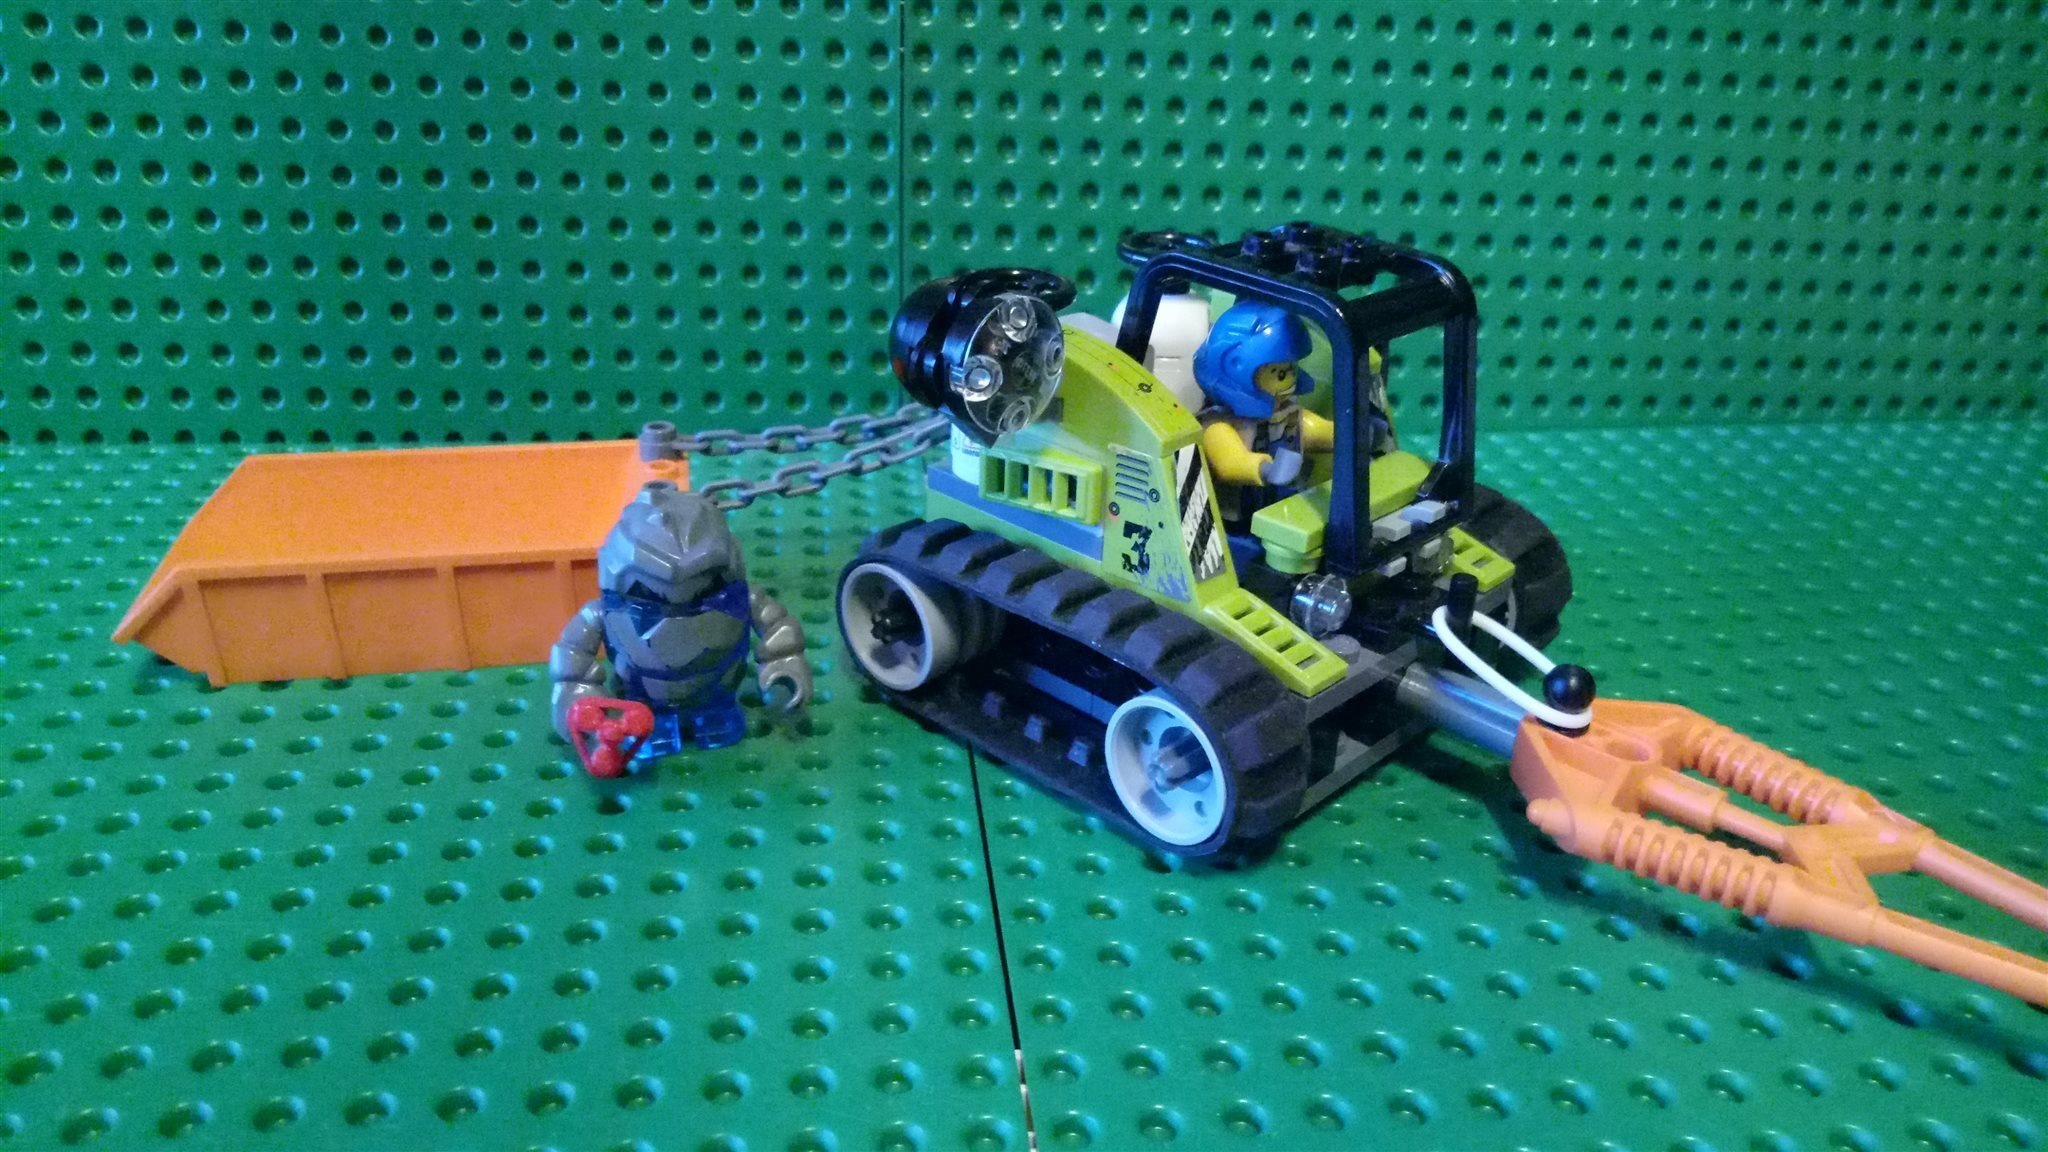 Lego Power Miners - Granite Grinder 8958